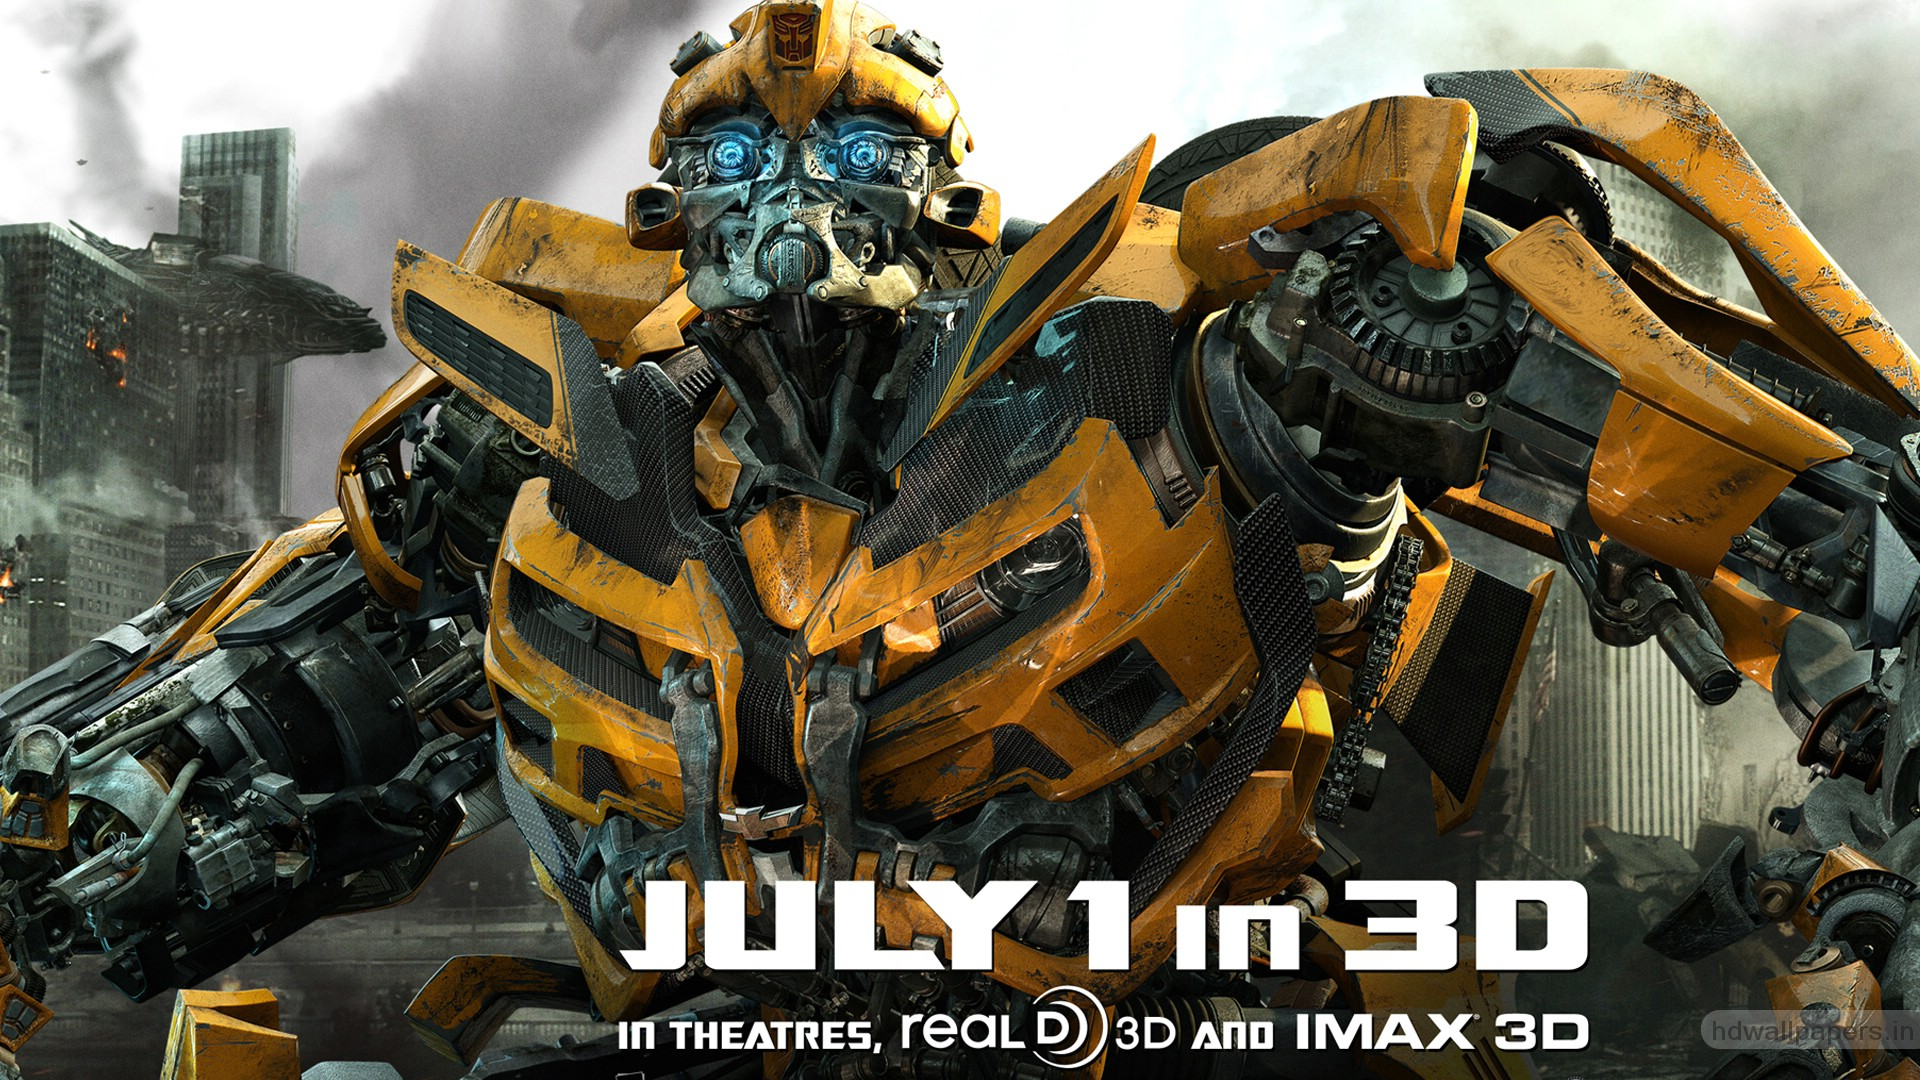 Bumblebee in New Transformers 3 1054.35 Kb